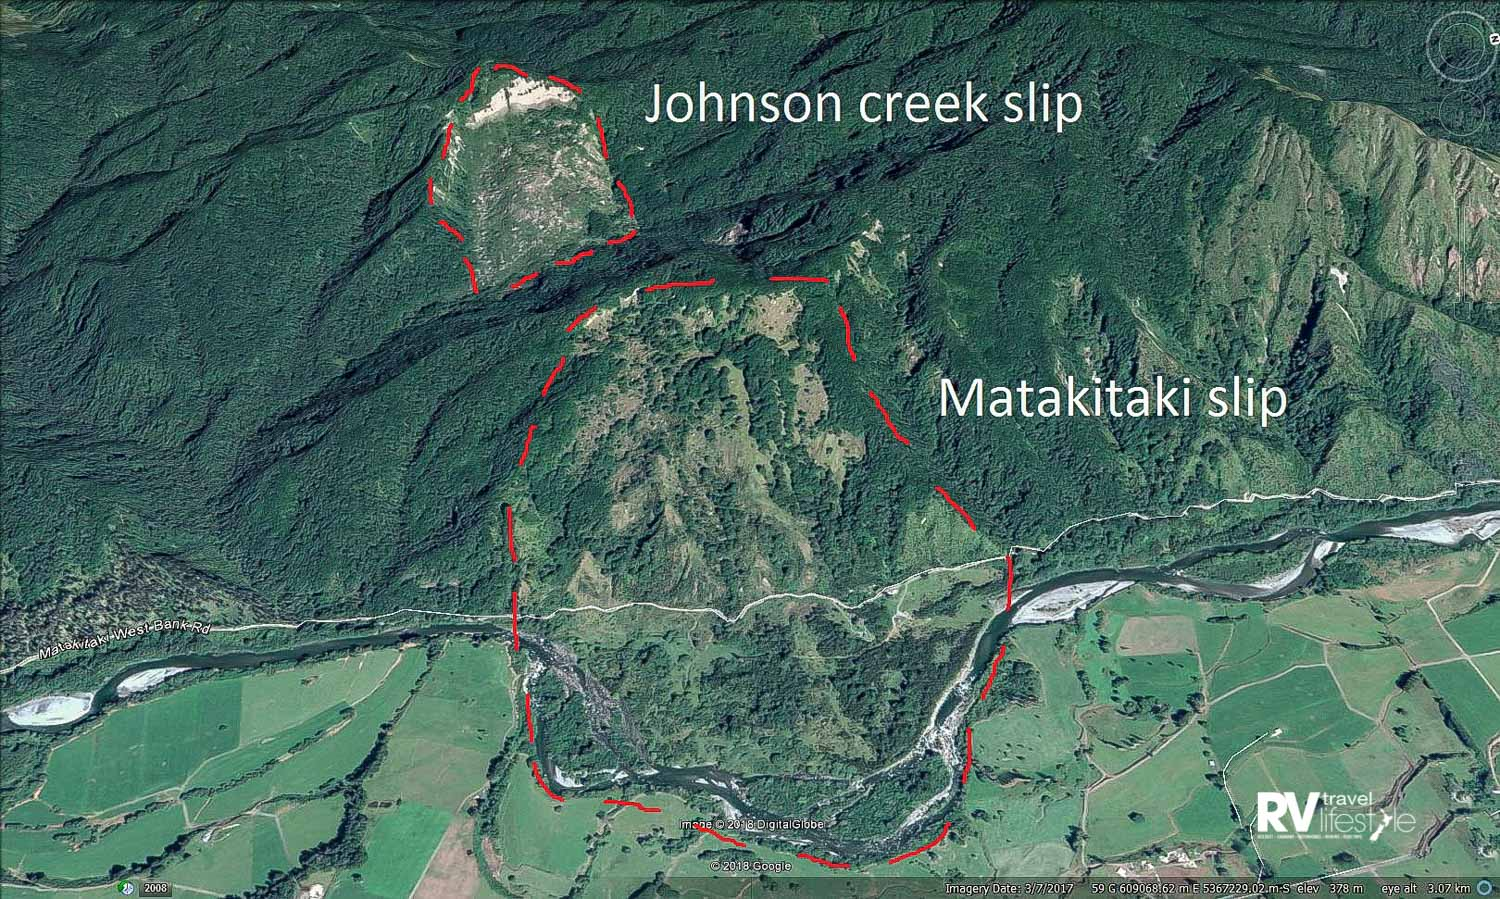 Image showing the massive landslide which pushed the Matakitaki River away from the toe of the hill